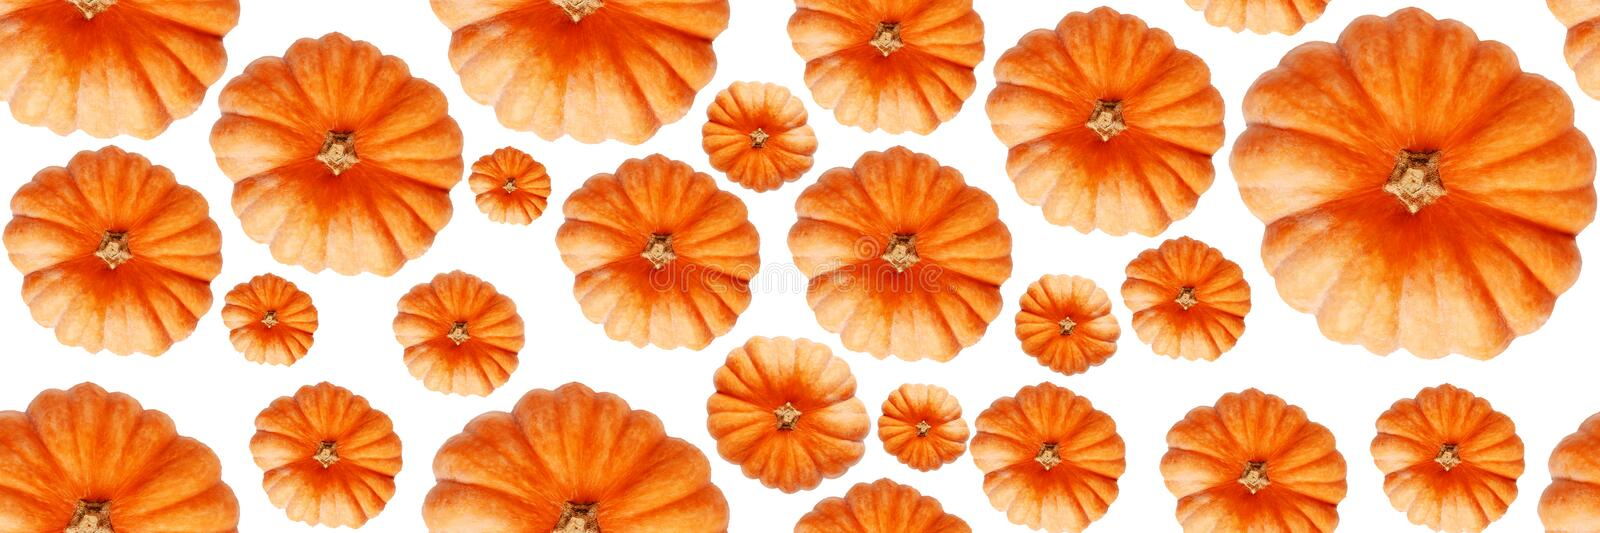 Seamless pattern with pumpkin. Abstract background. Pumpkins isolated on white background. Banner. Top view. Seamless pattern with pumpkin. Abstract background stock image